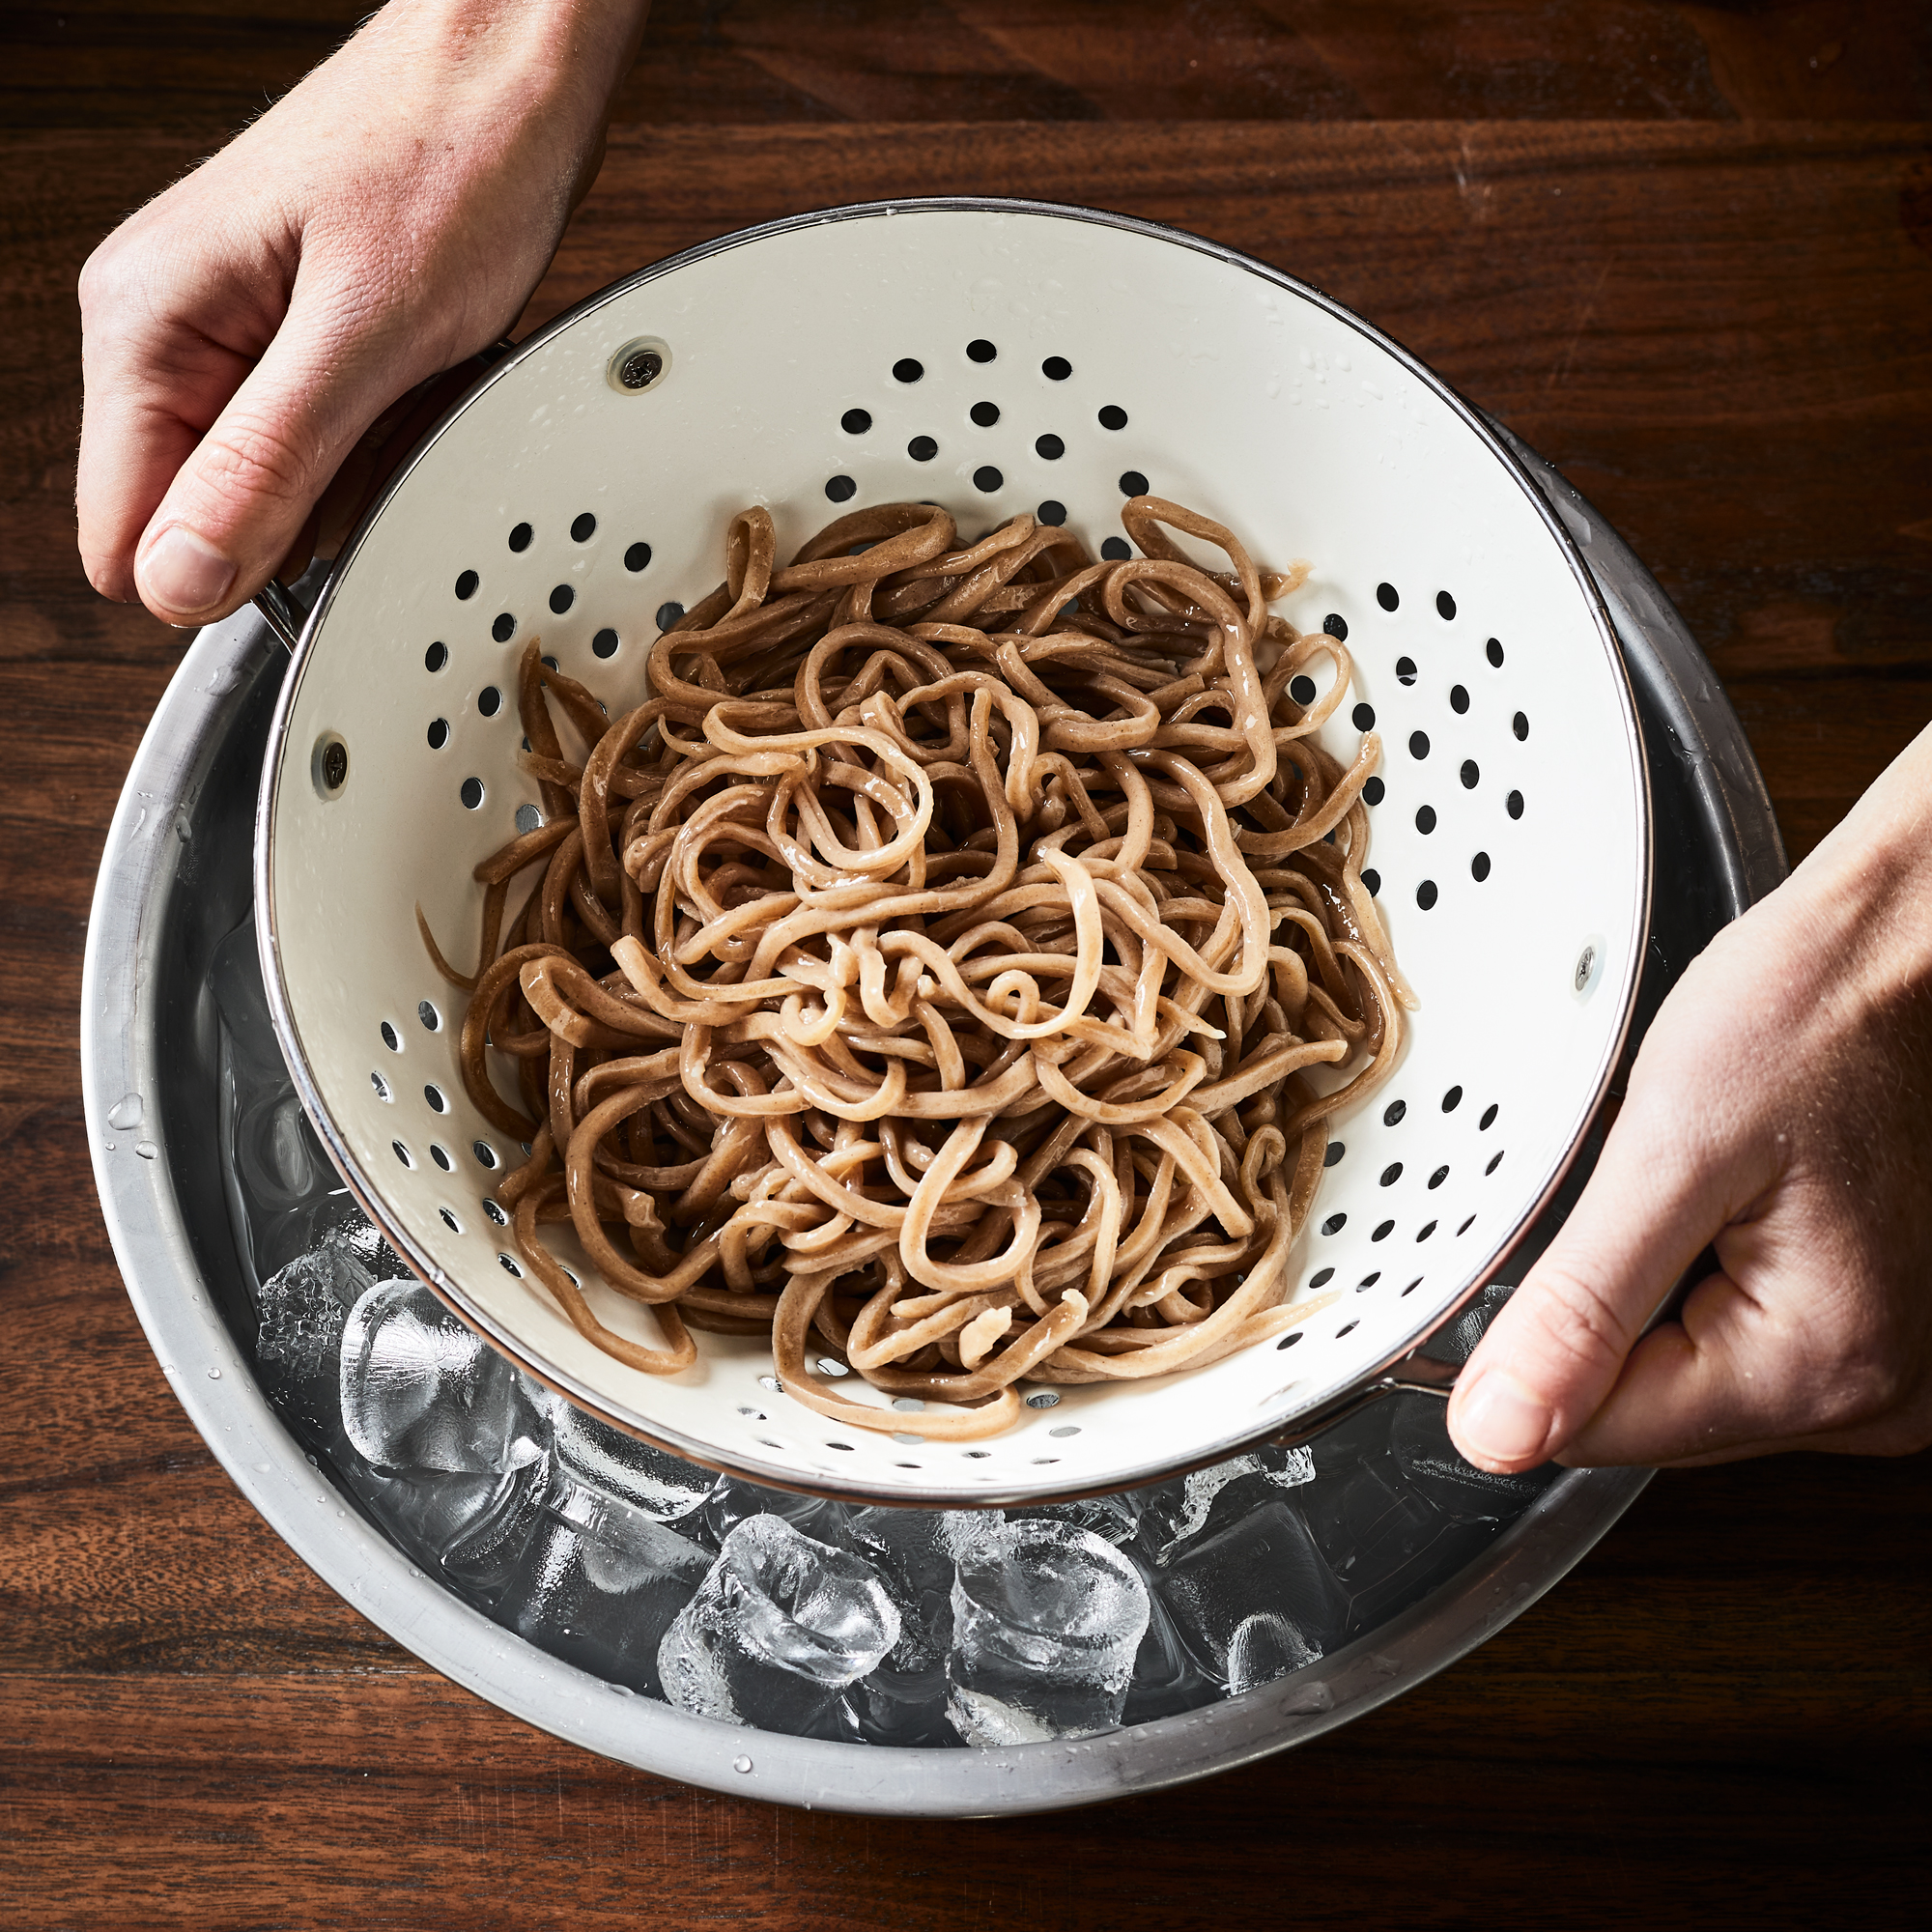 How to Make Homemade Soba Noodles